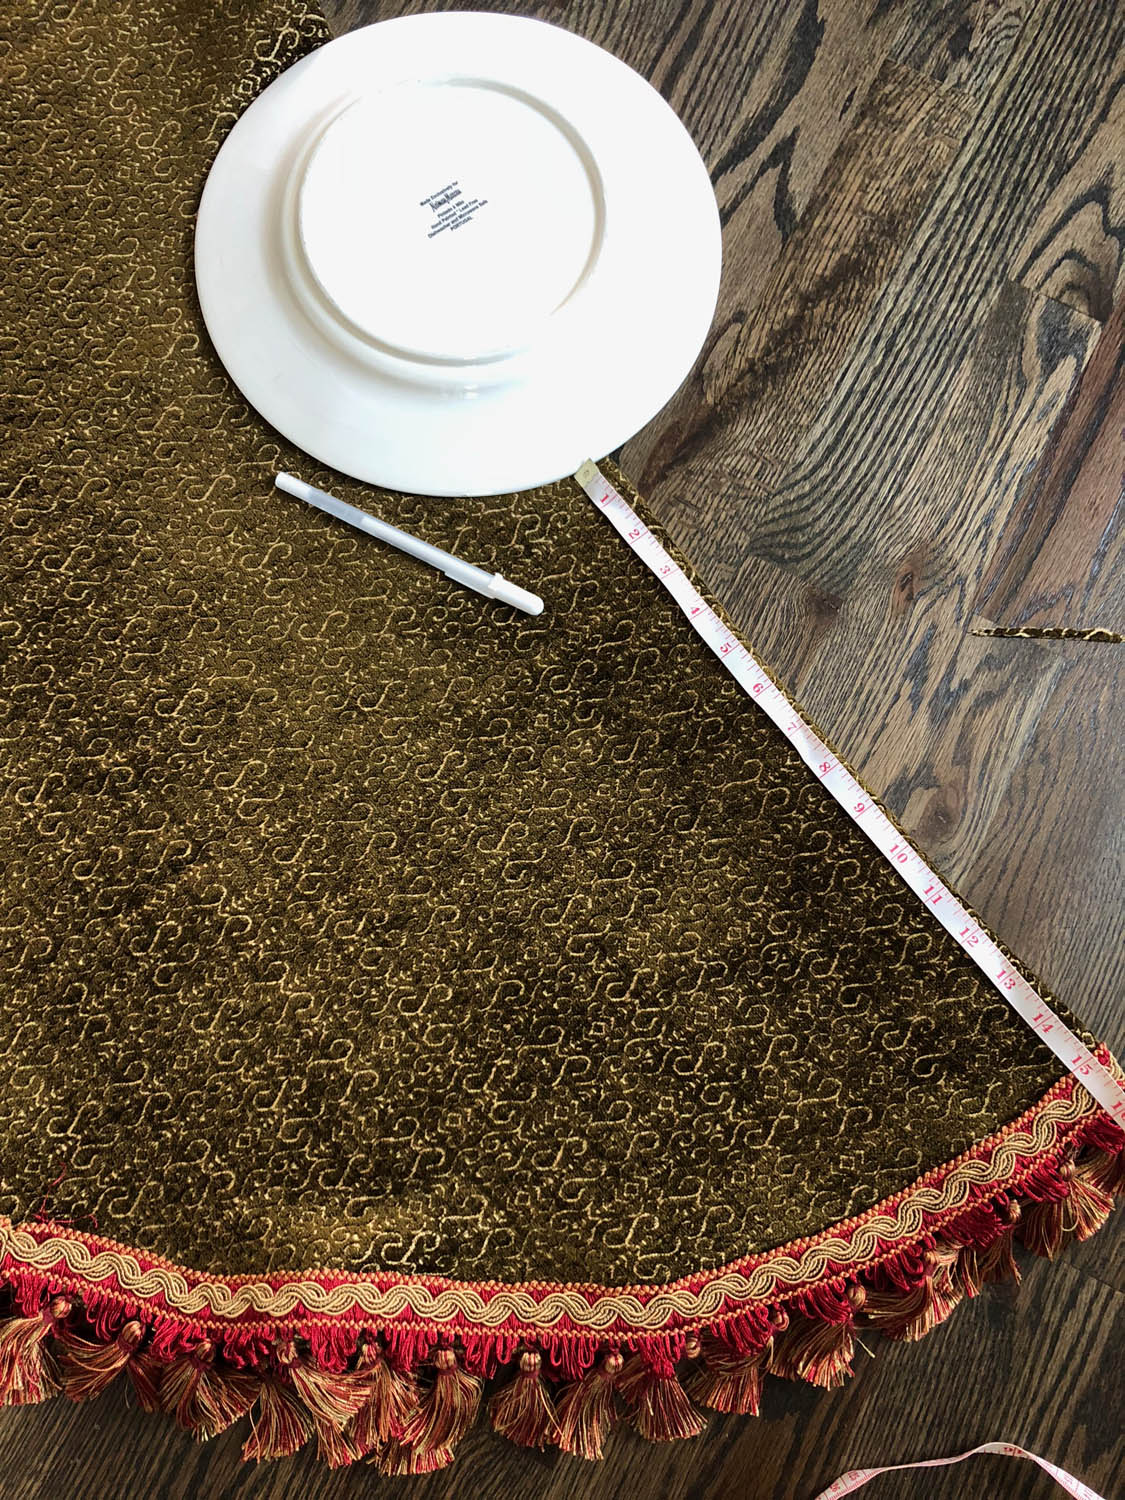 dinner plate placed over upholstery fabric to mark center circle opening for Christmas tree skirt